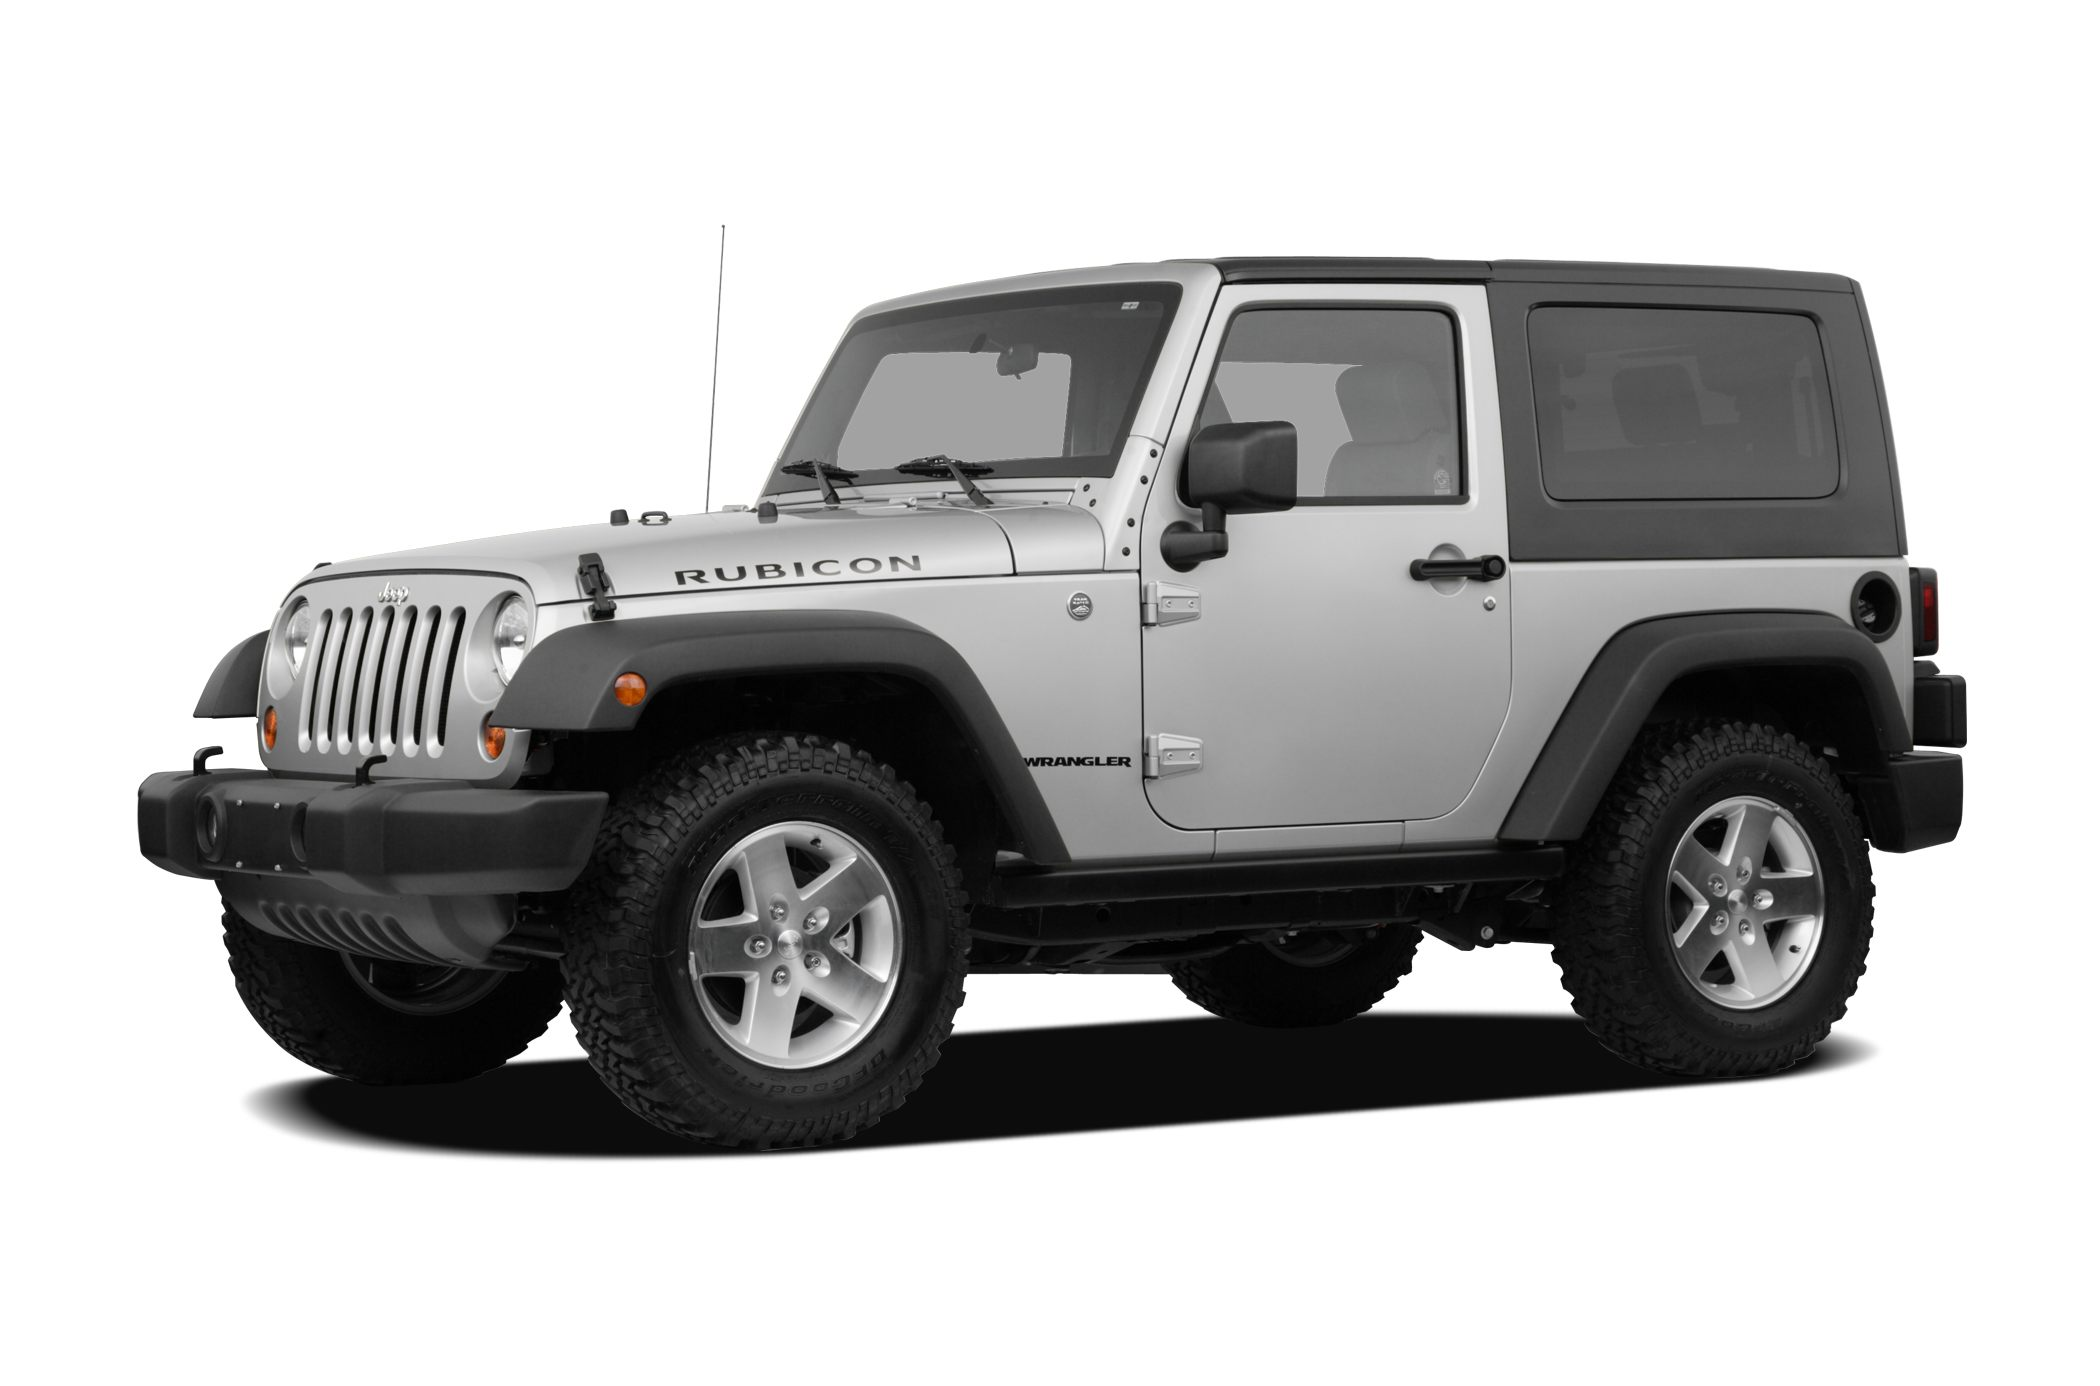 2007 Jeep Wrangler X SUV for sale in Boston for $17,498 with 67,673 miles.